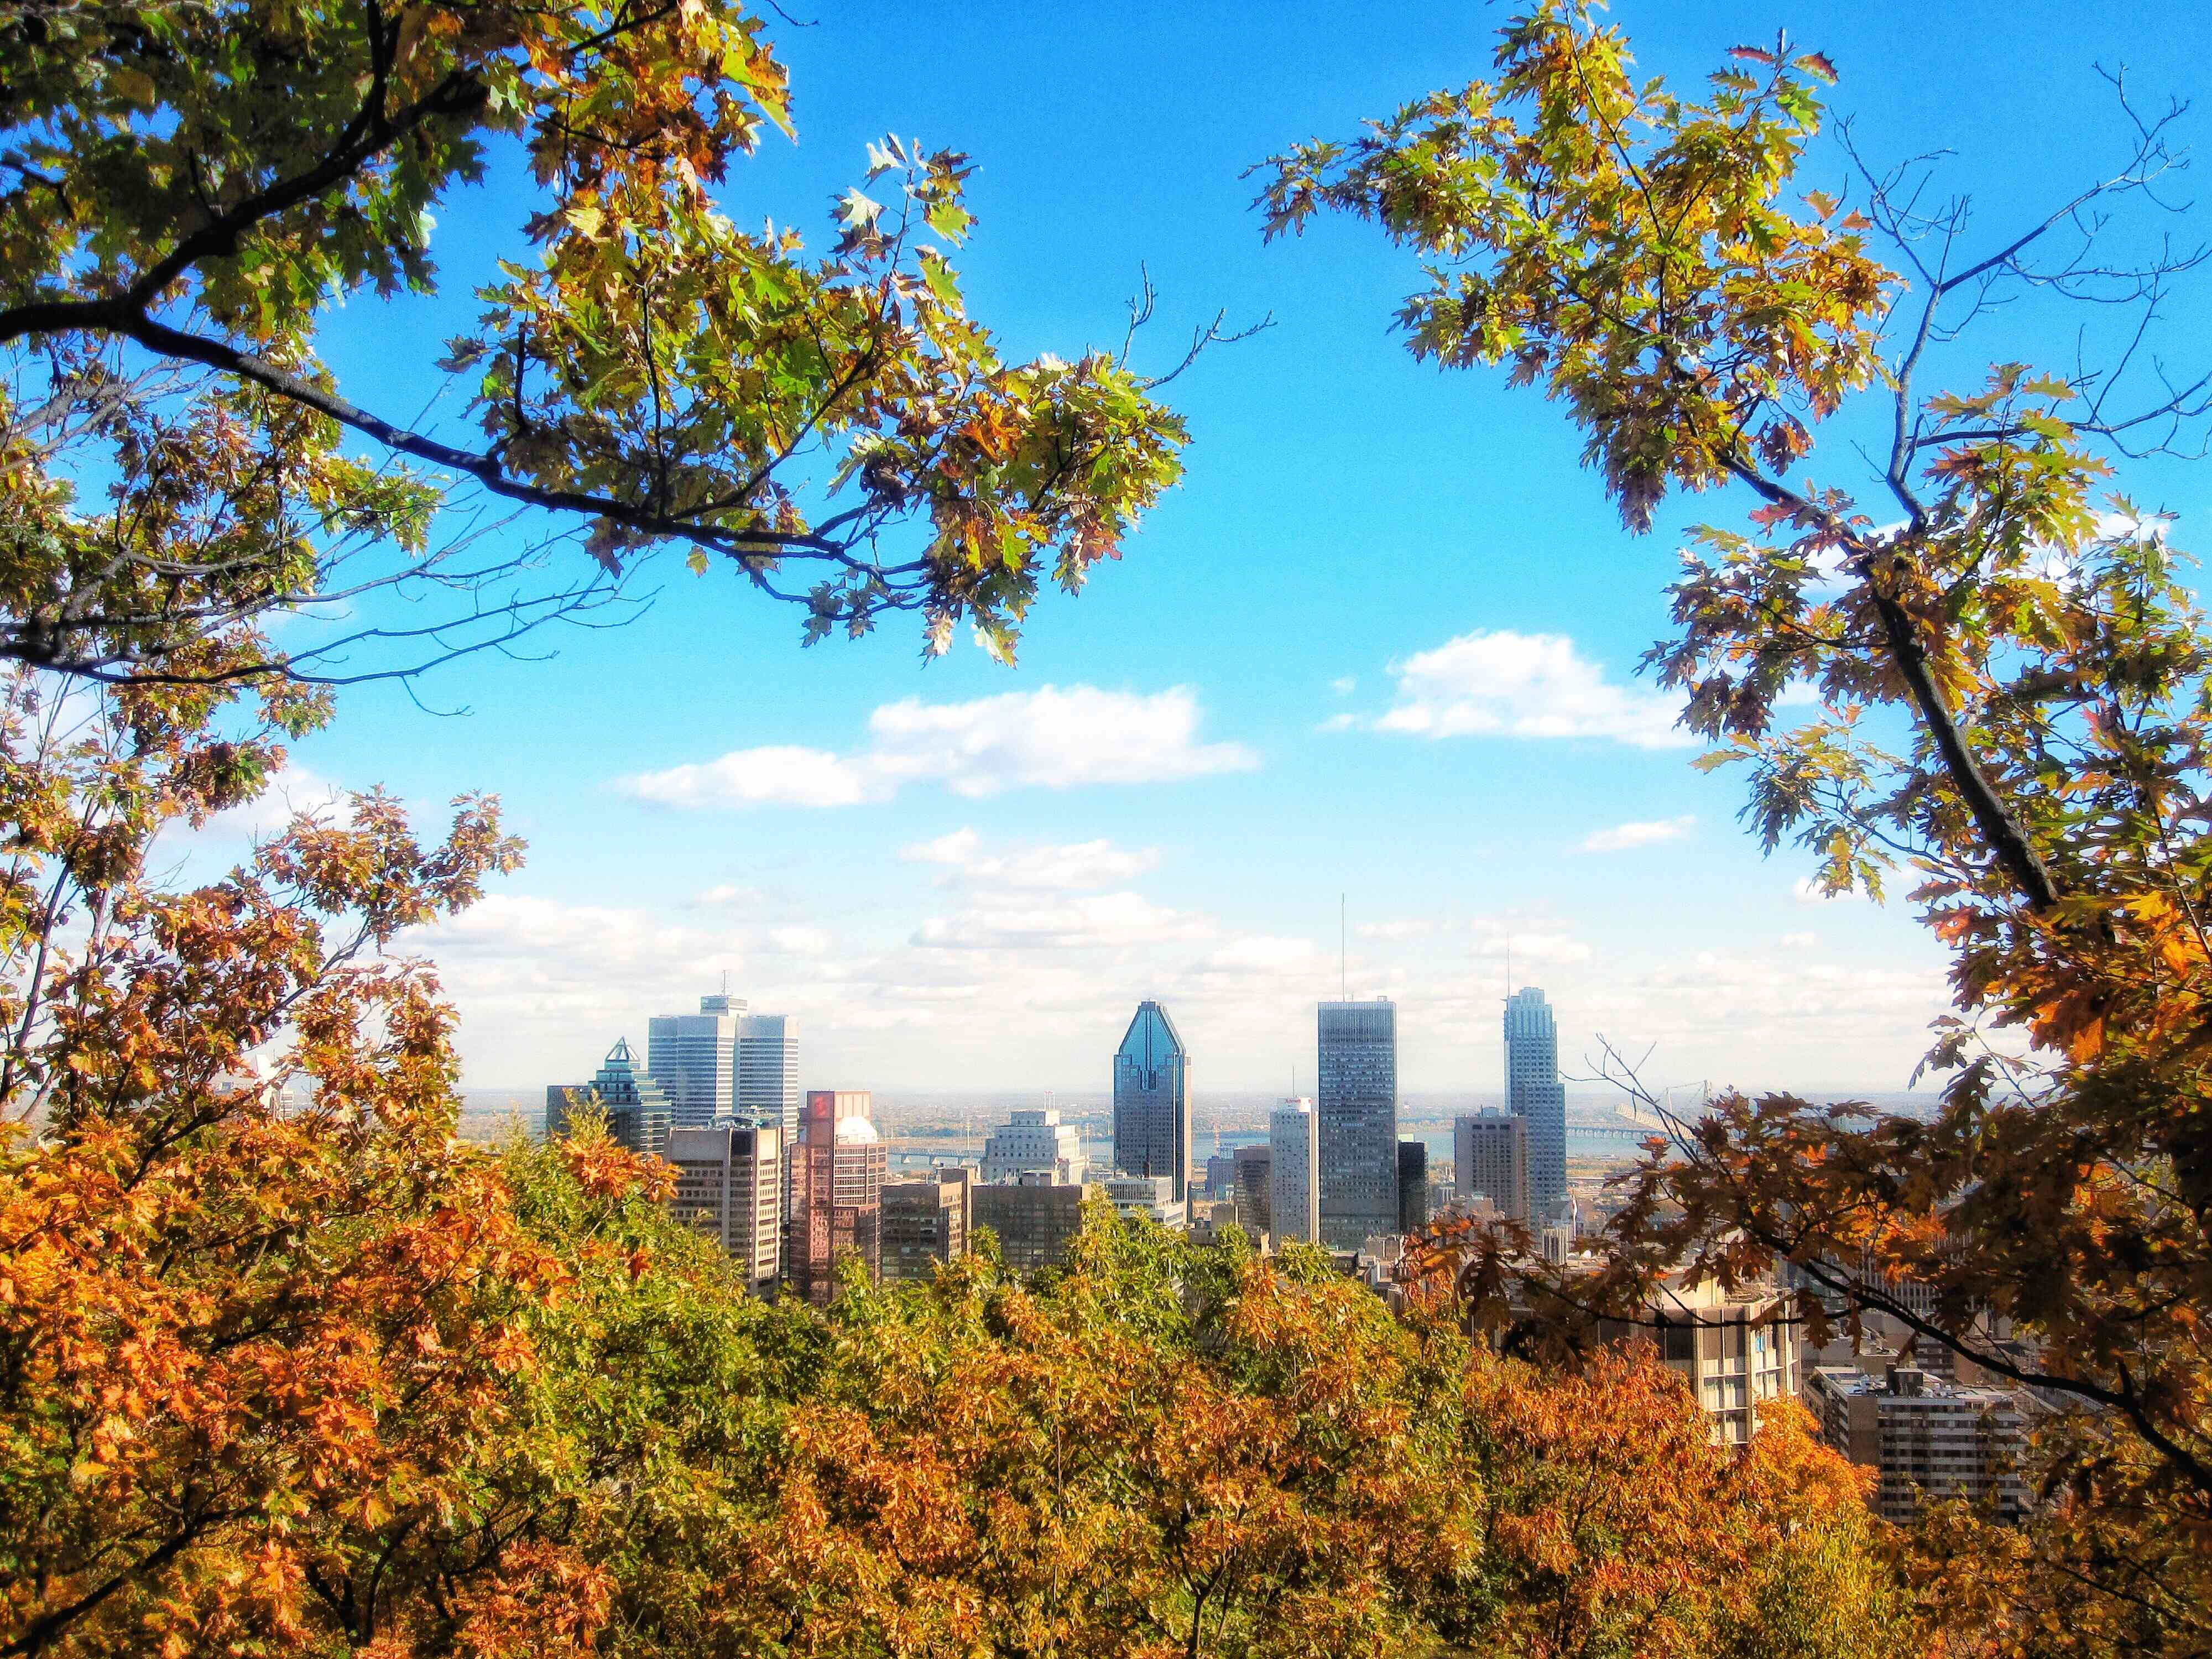 Fall trees from Mount Royal Park in Montreal